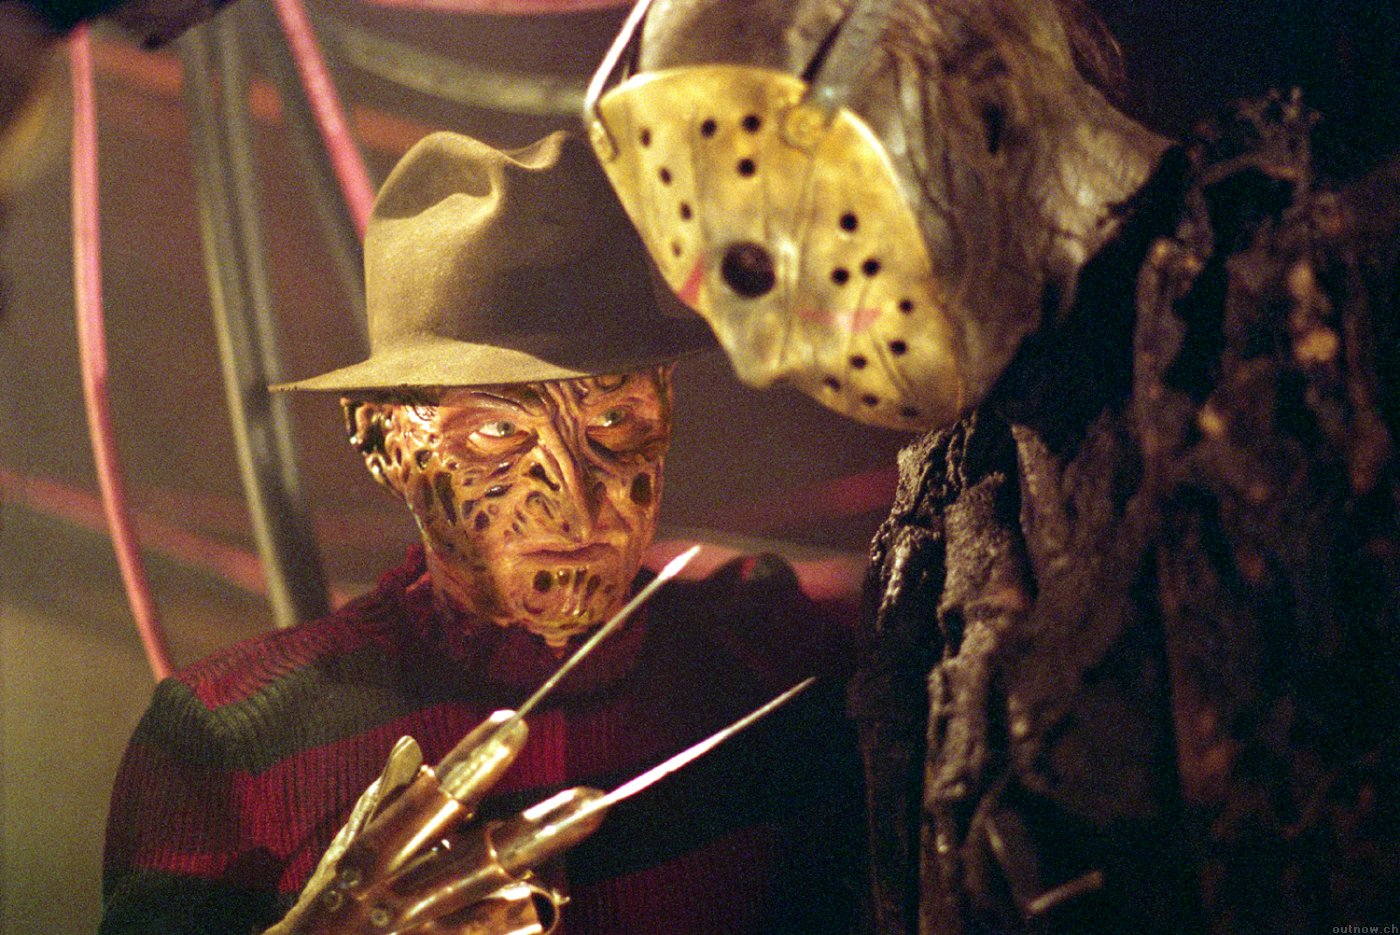 Freddy (Robert Englund) and Jason (Ken Kirzinger) in Freddy vs. Jason (2003)